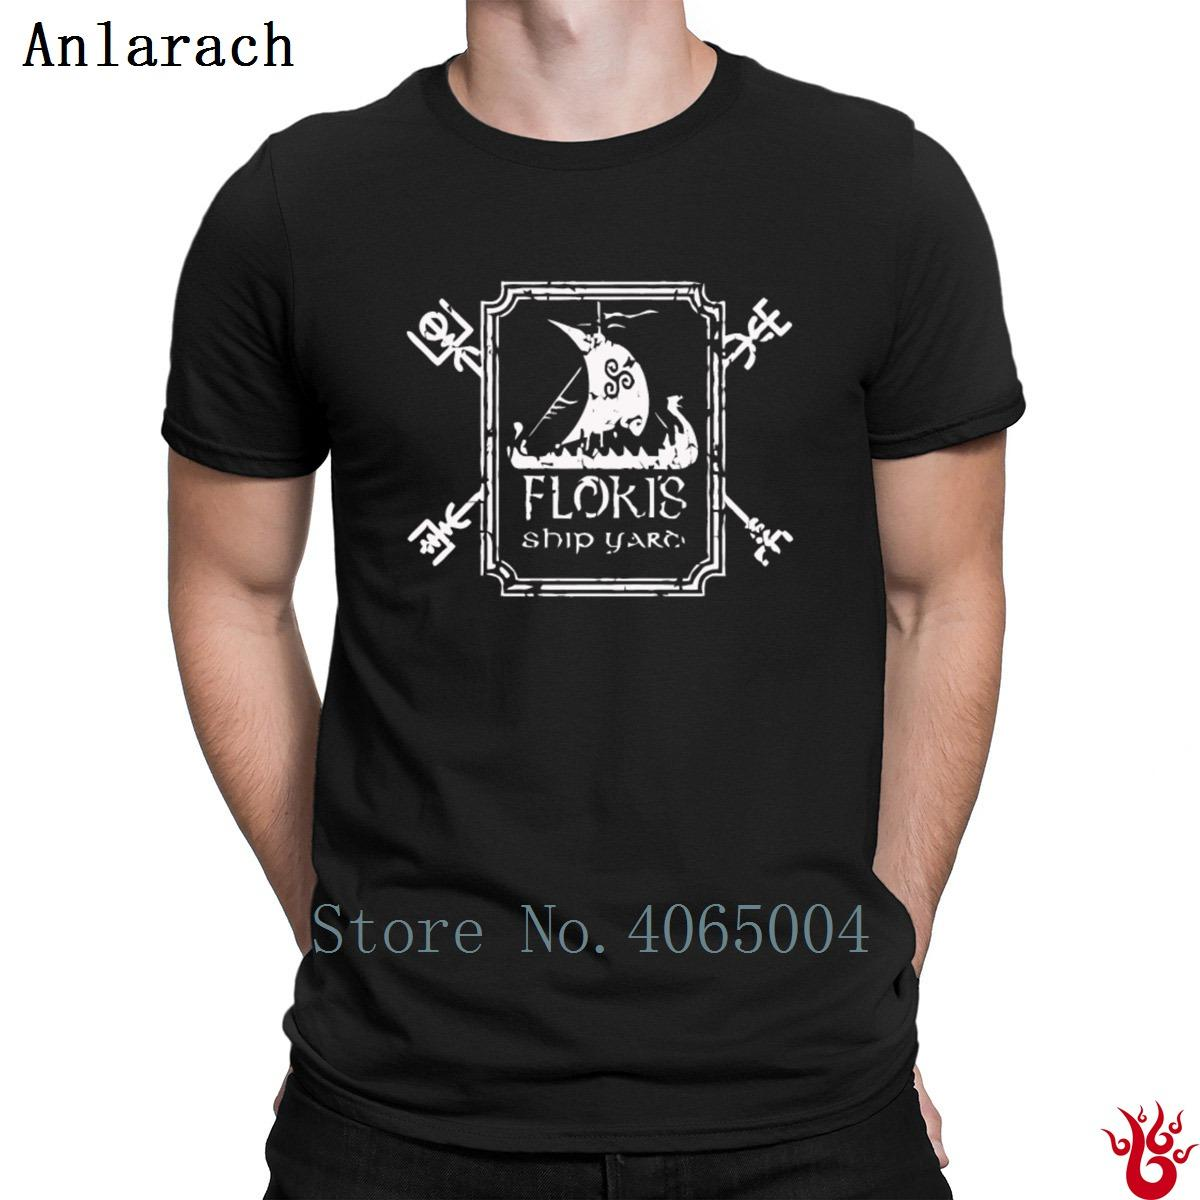 42c0dbfc6 Floki Shipyard T Shirt Original O Neck Pop Top Tee 100% Cotton Men'S Tshirt  2018 New Style Gift Solid Color Knitted Mens T Shirt Cool Tshirt Designs  From ...